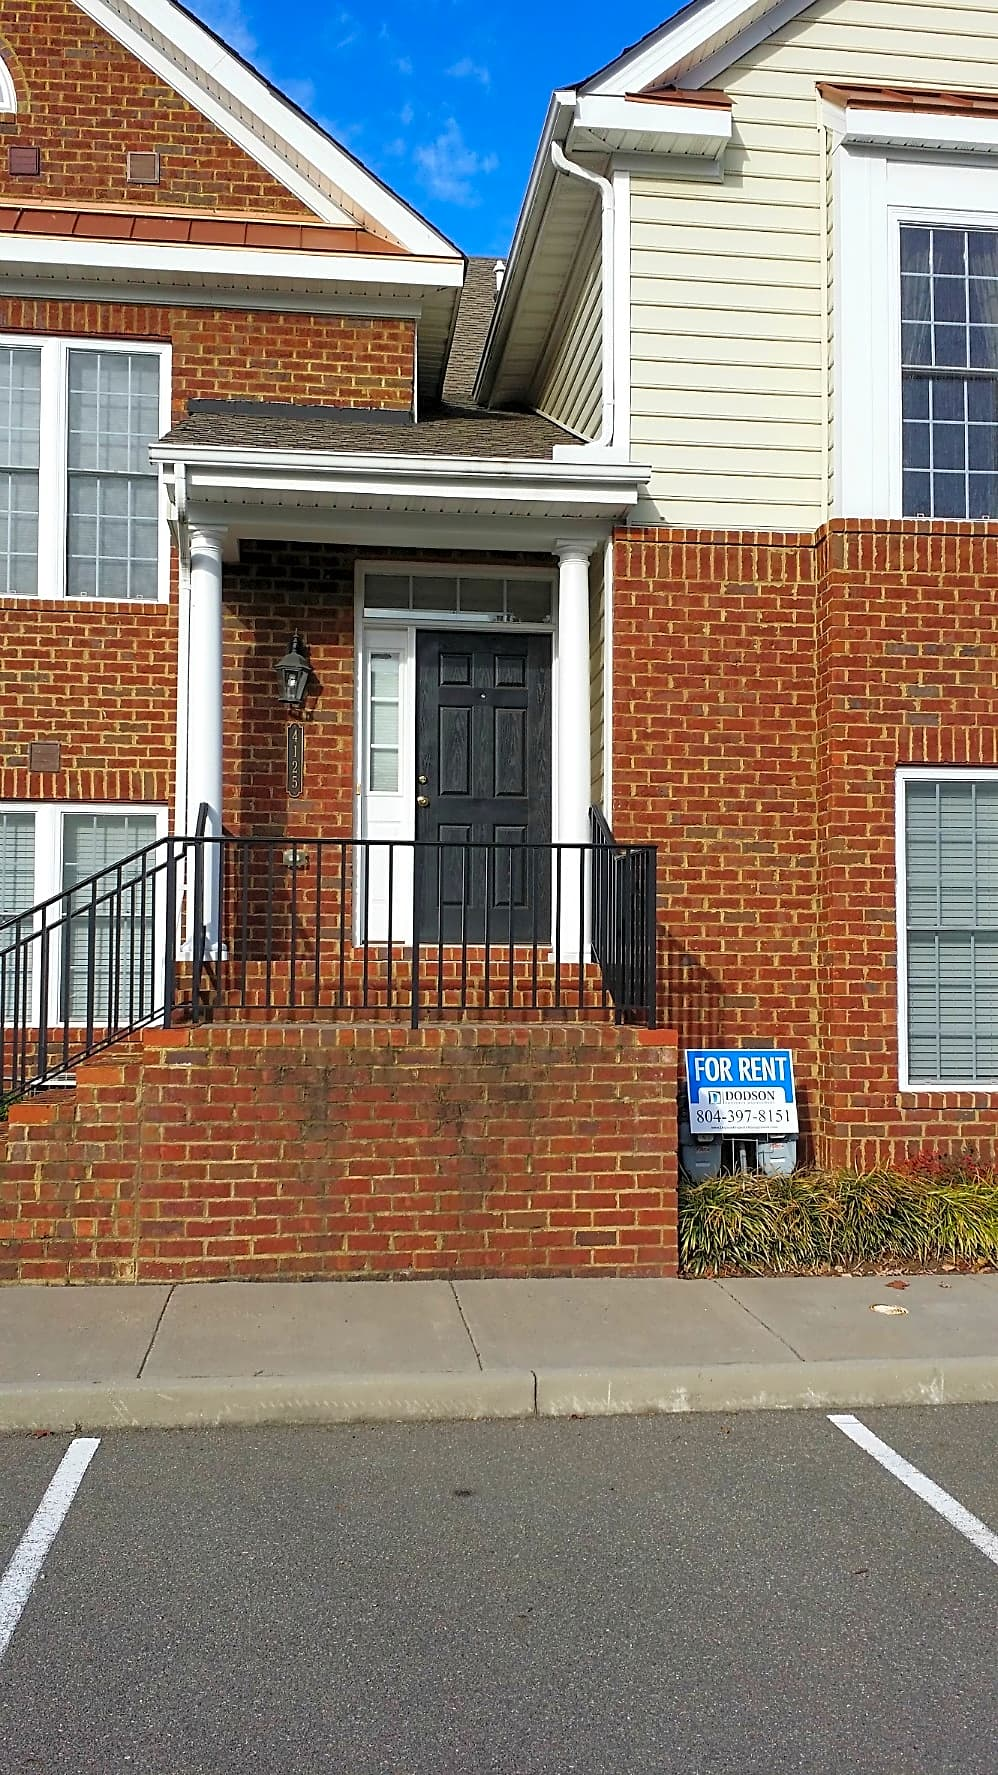 Condo for Rent in Glen Allen